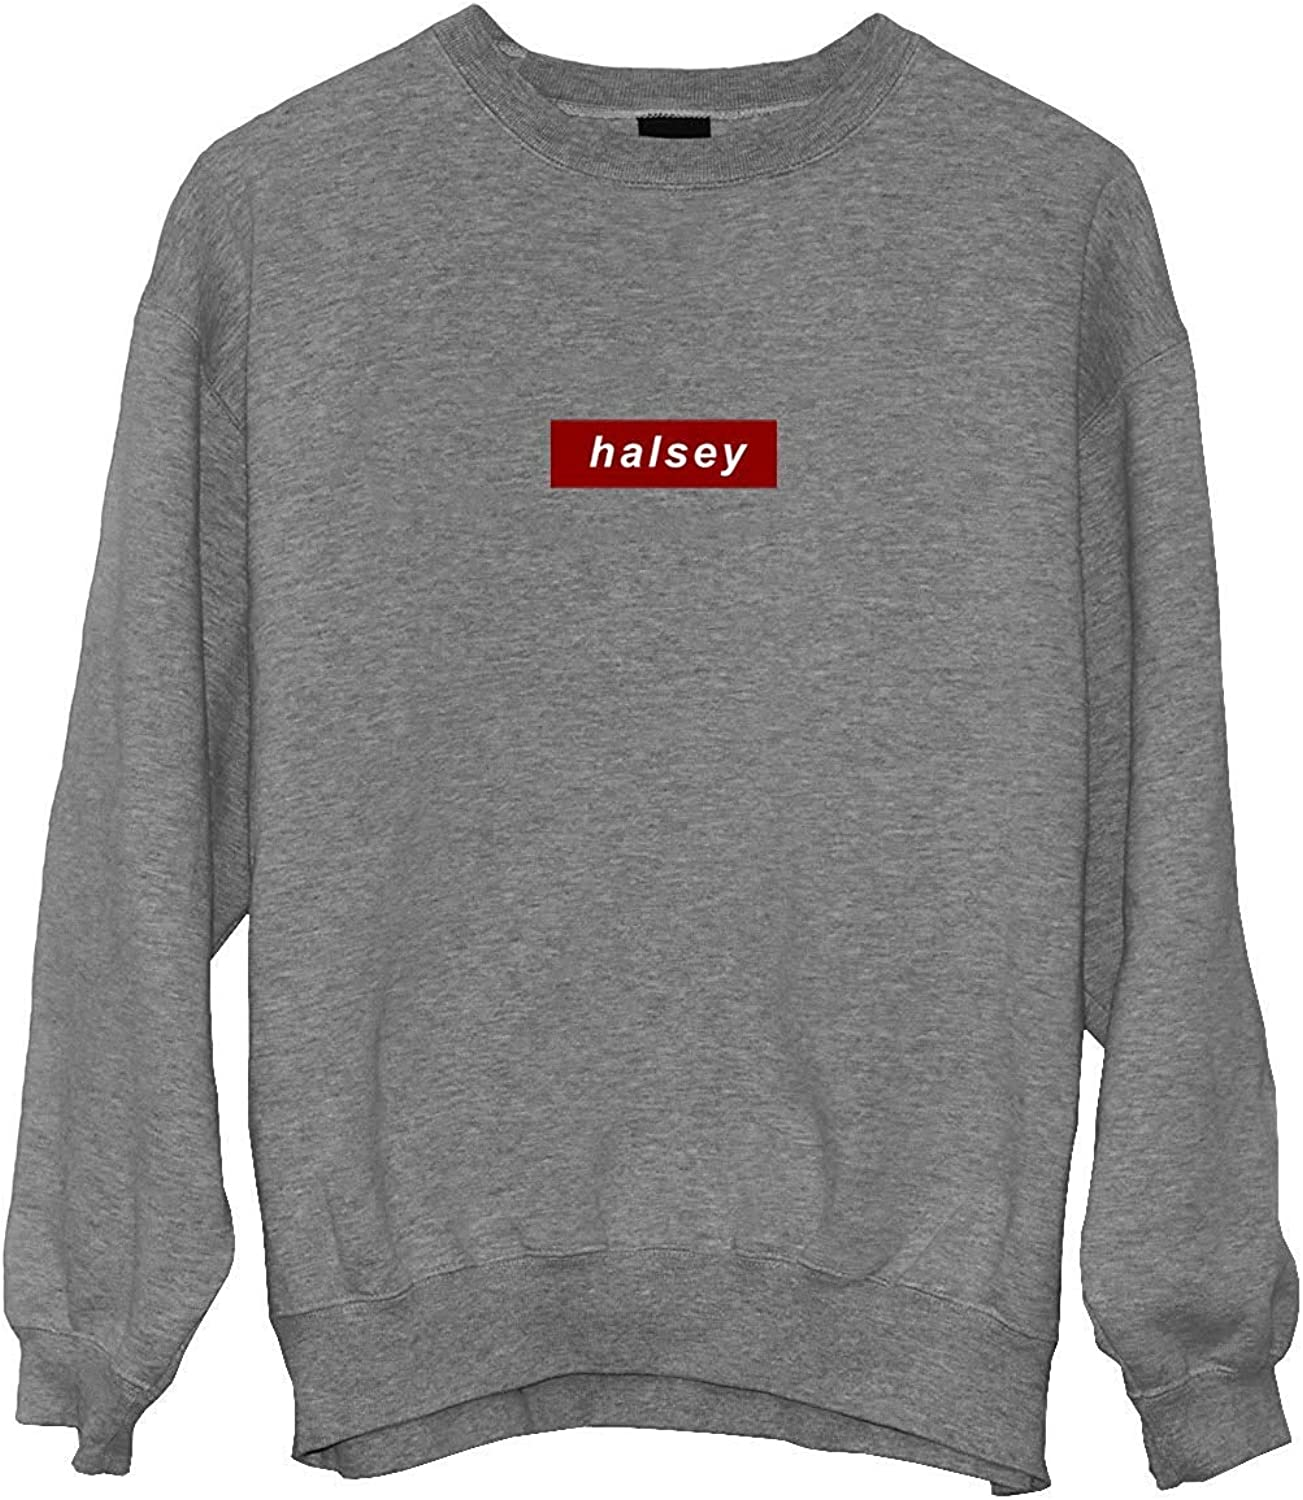 MAKKAP Halsey Rap Music Legend Fan/_MA0712 Crewneck